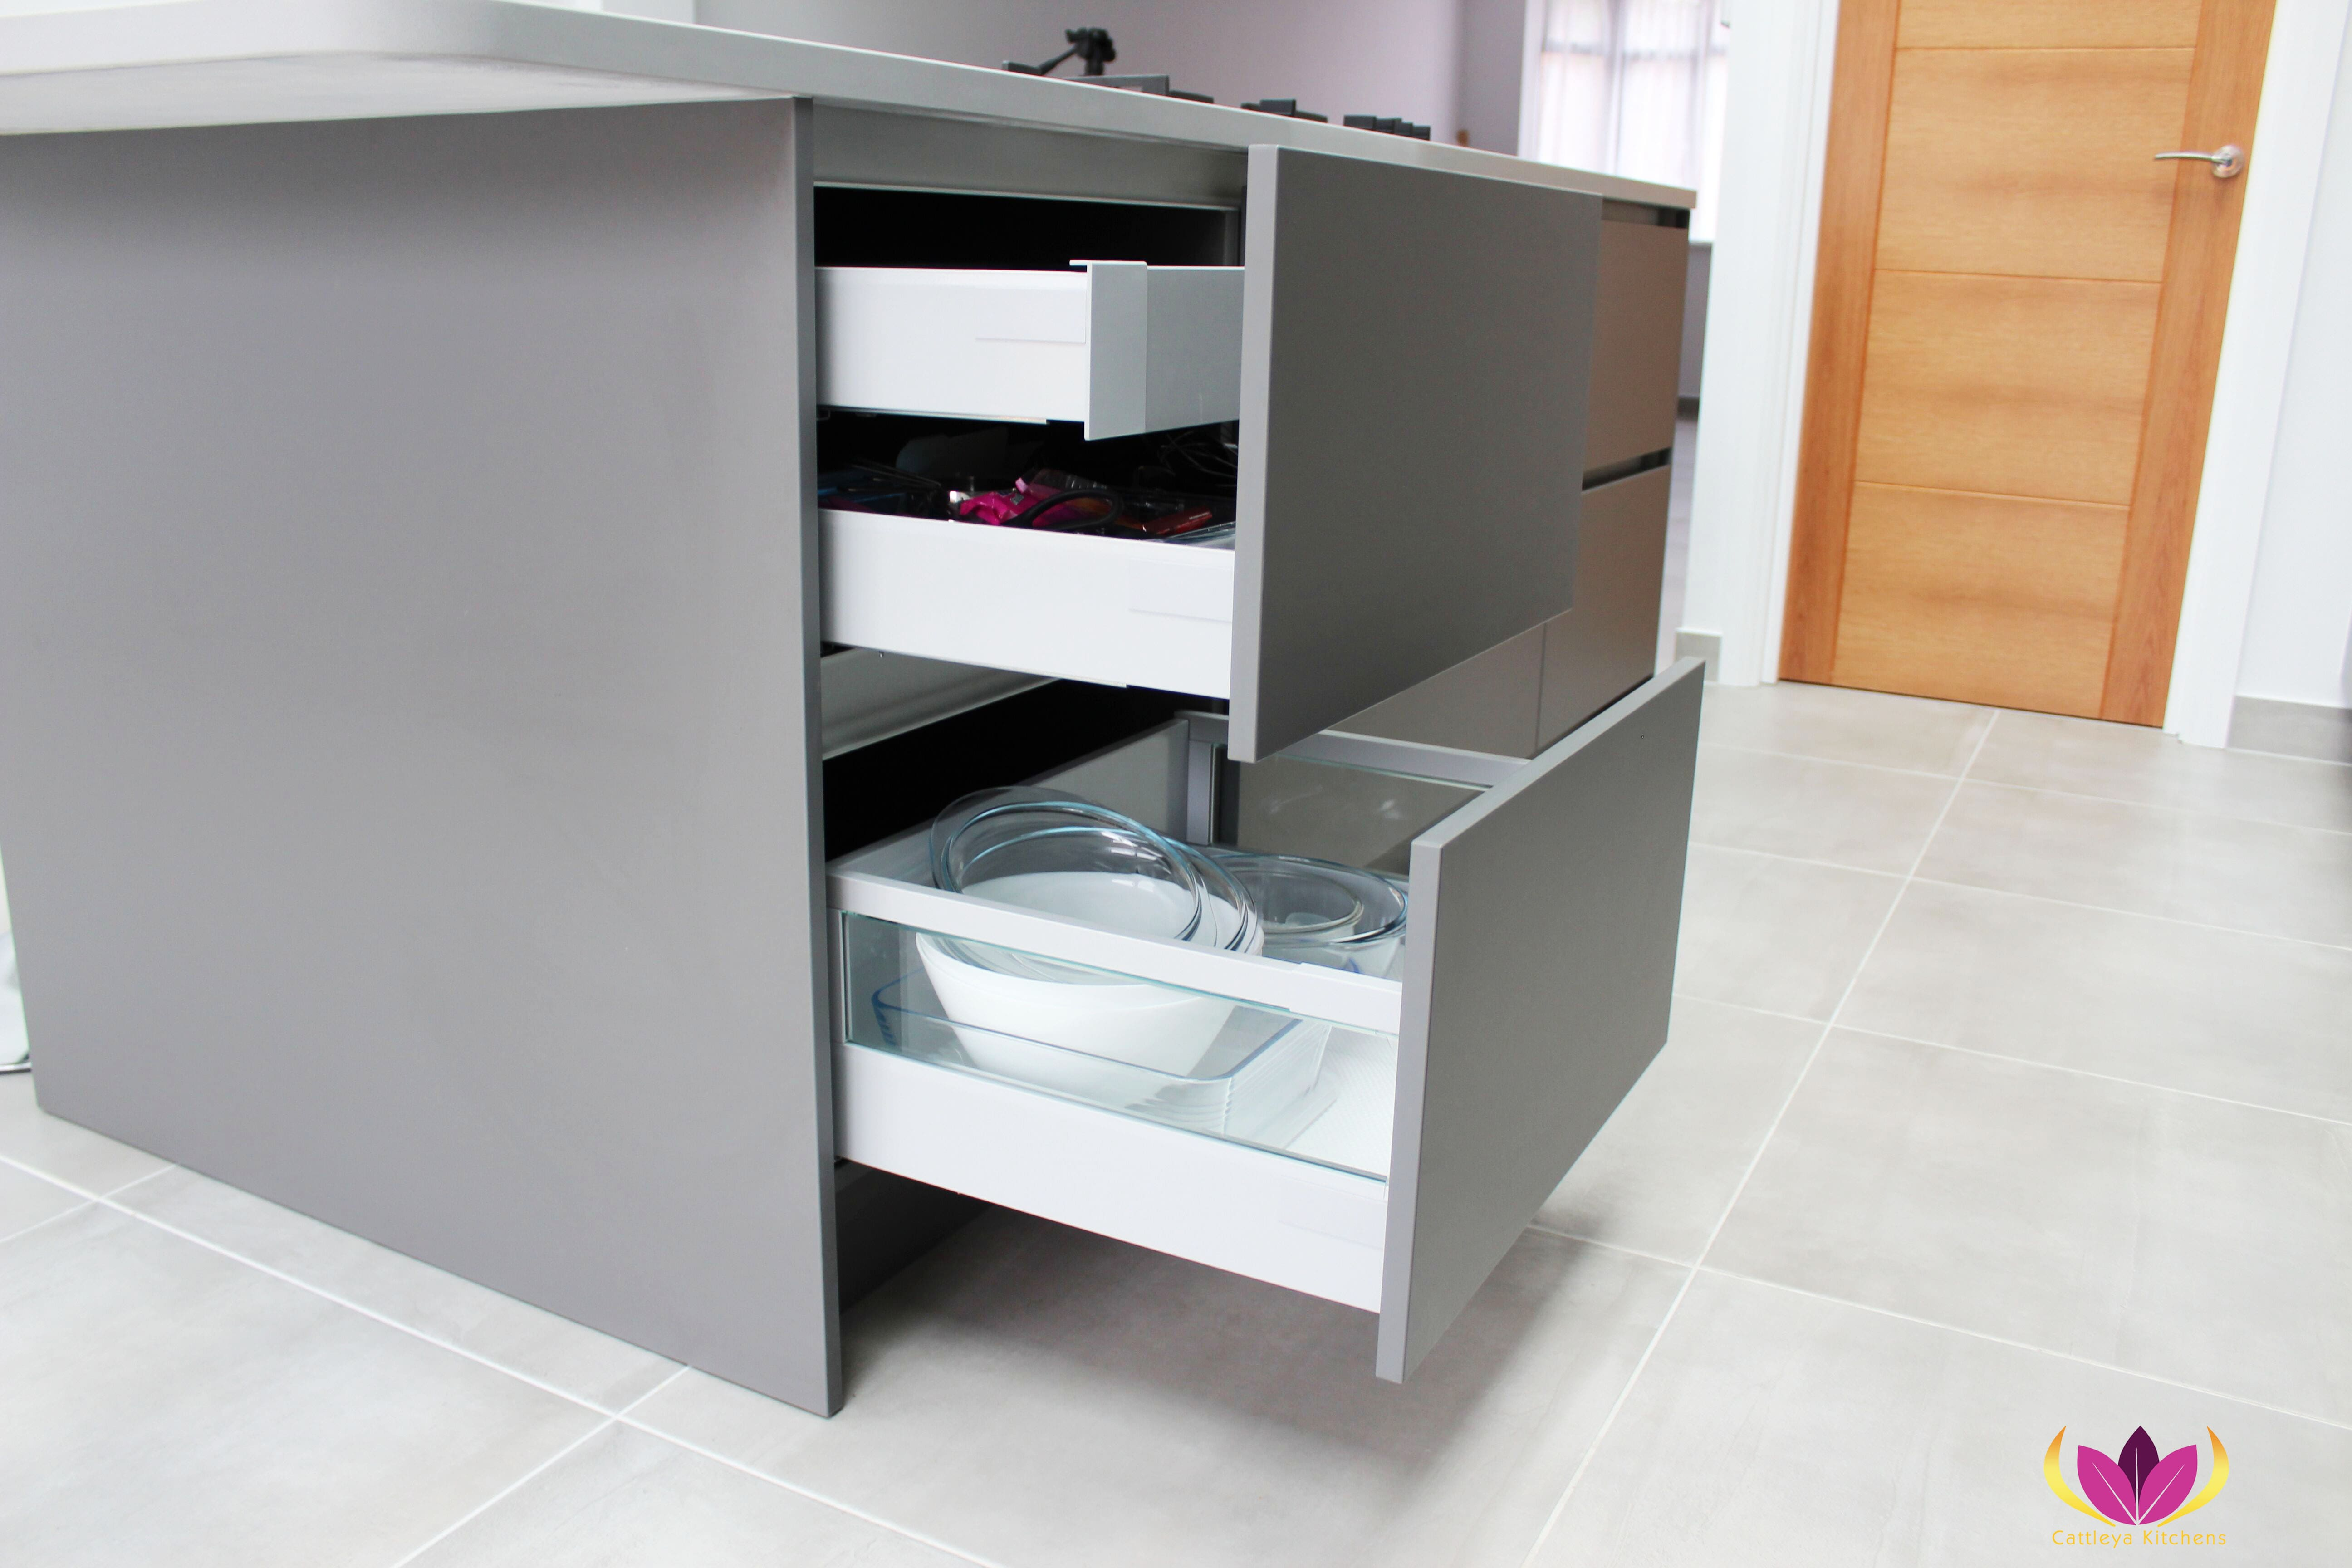 Gray drawers with internal drawers Edgware Finished Kitchen Project